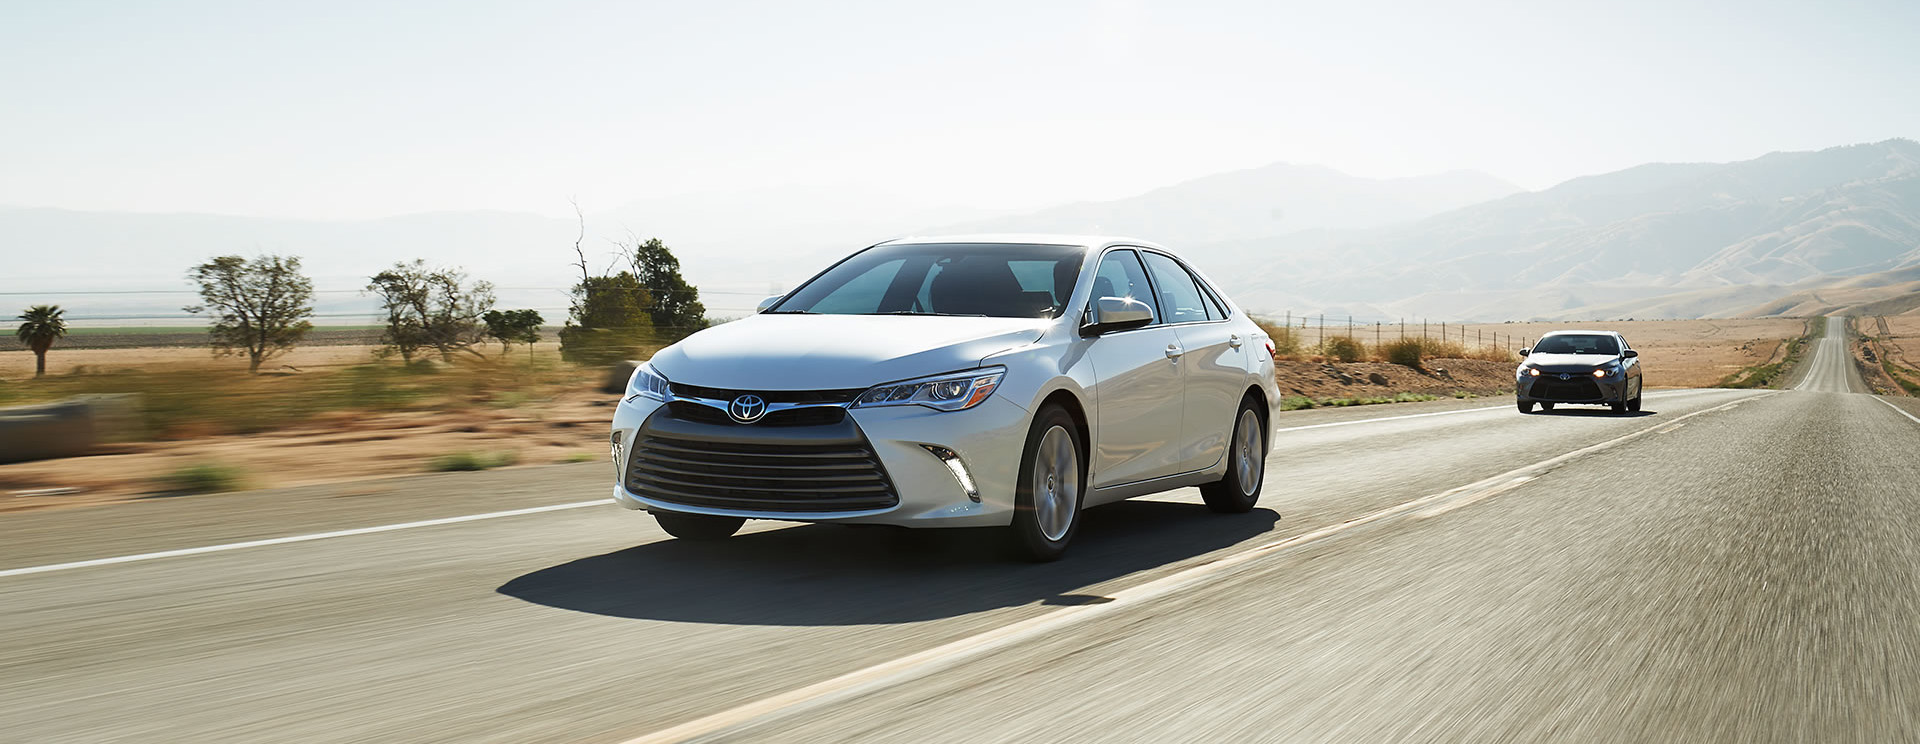 2016 Camry For Sale Near Chicago